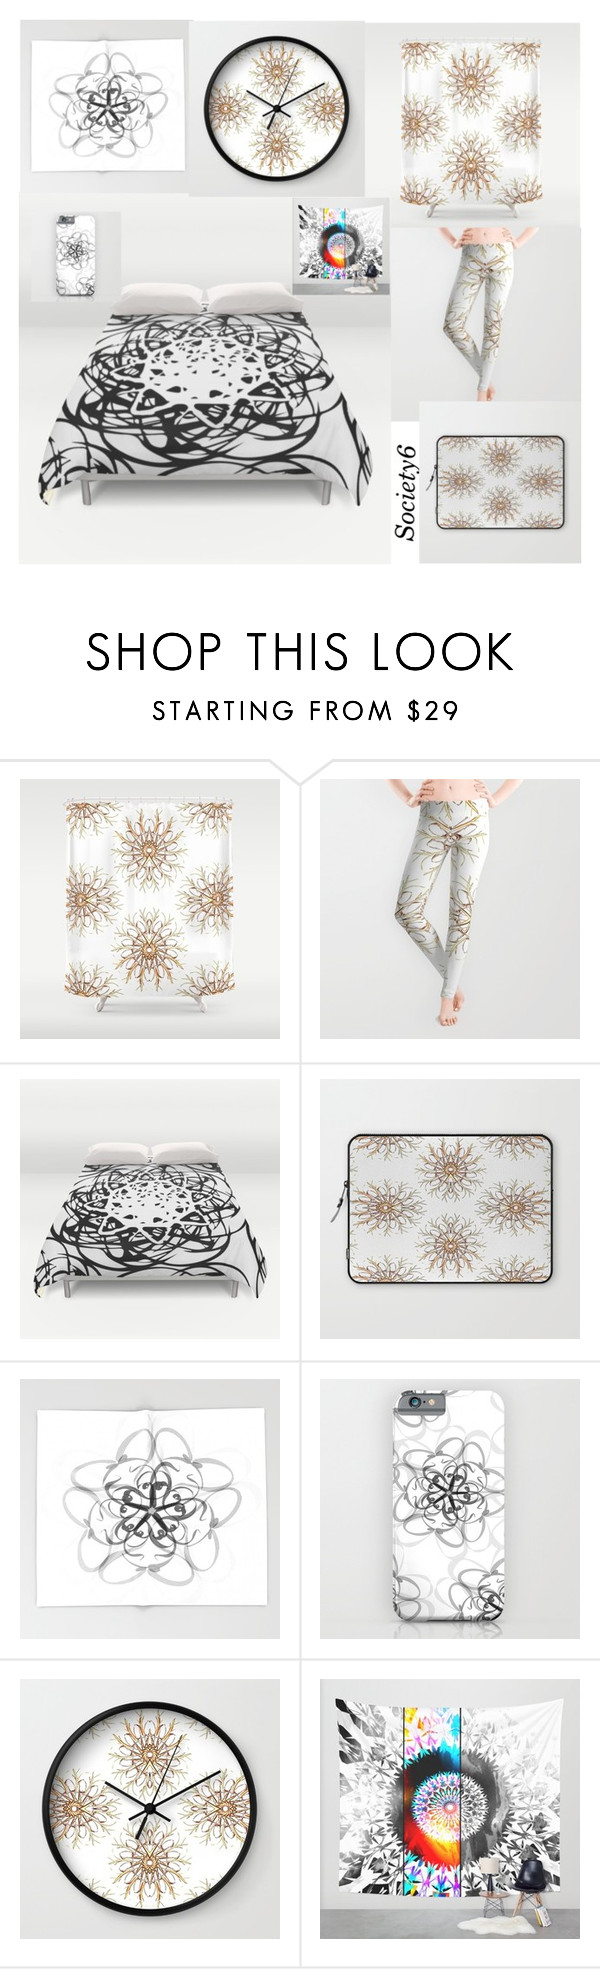 """Society6"" by car69 ❤ liked on Polyvore featuring interior, interiors, interior design, home, home decor, interior decorating, art, artdeco, decor and homegoods"